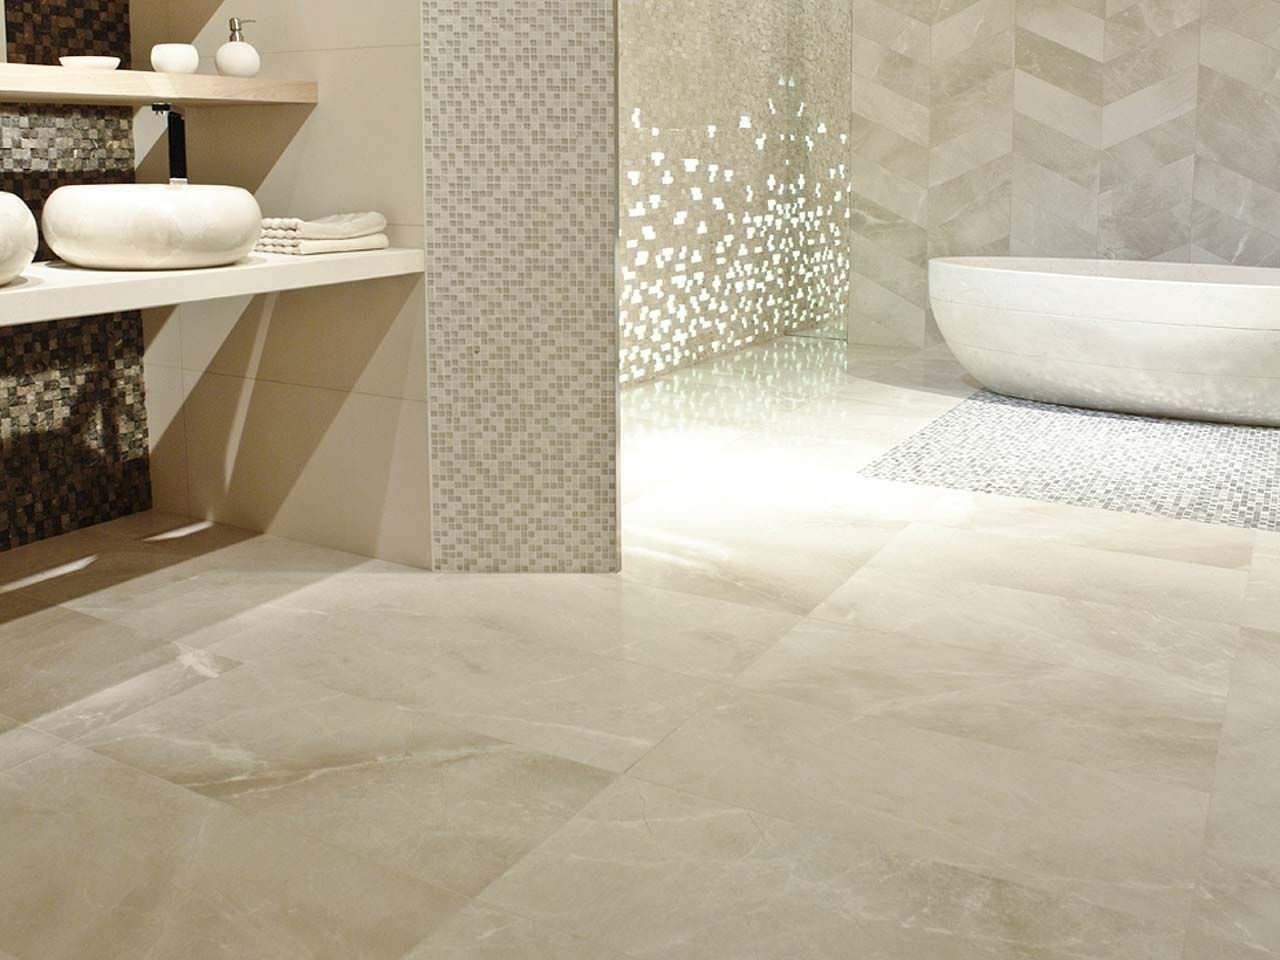 How To Clean Marble Flooring Like A Pro Cleaning Marble Floors